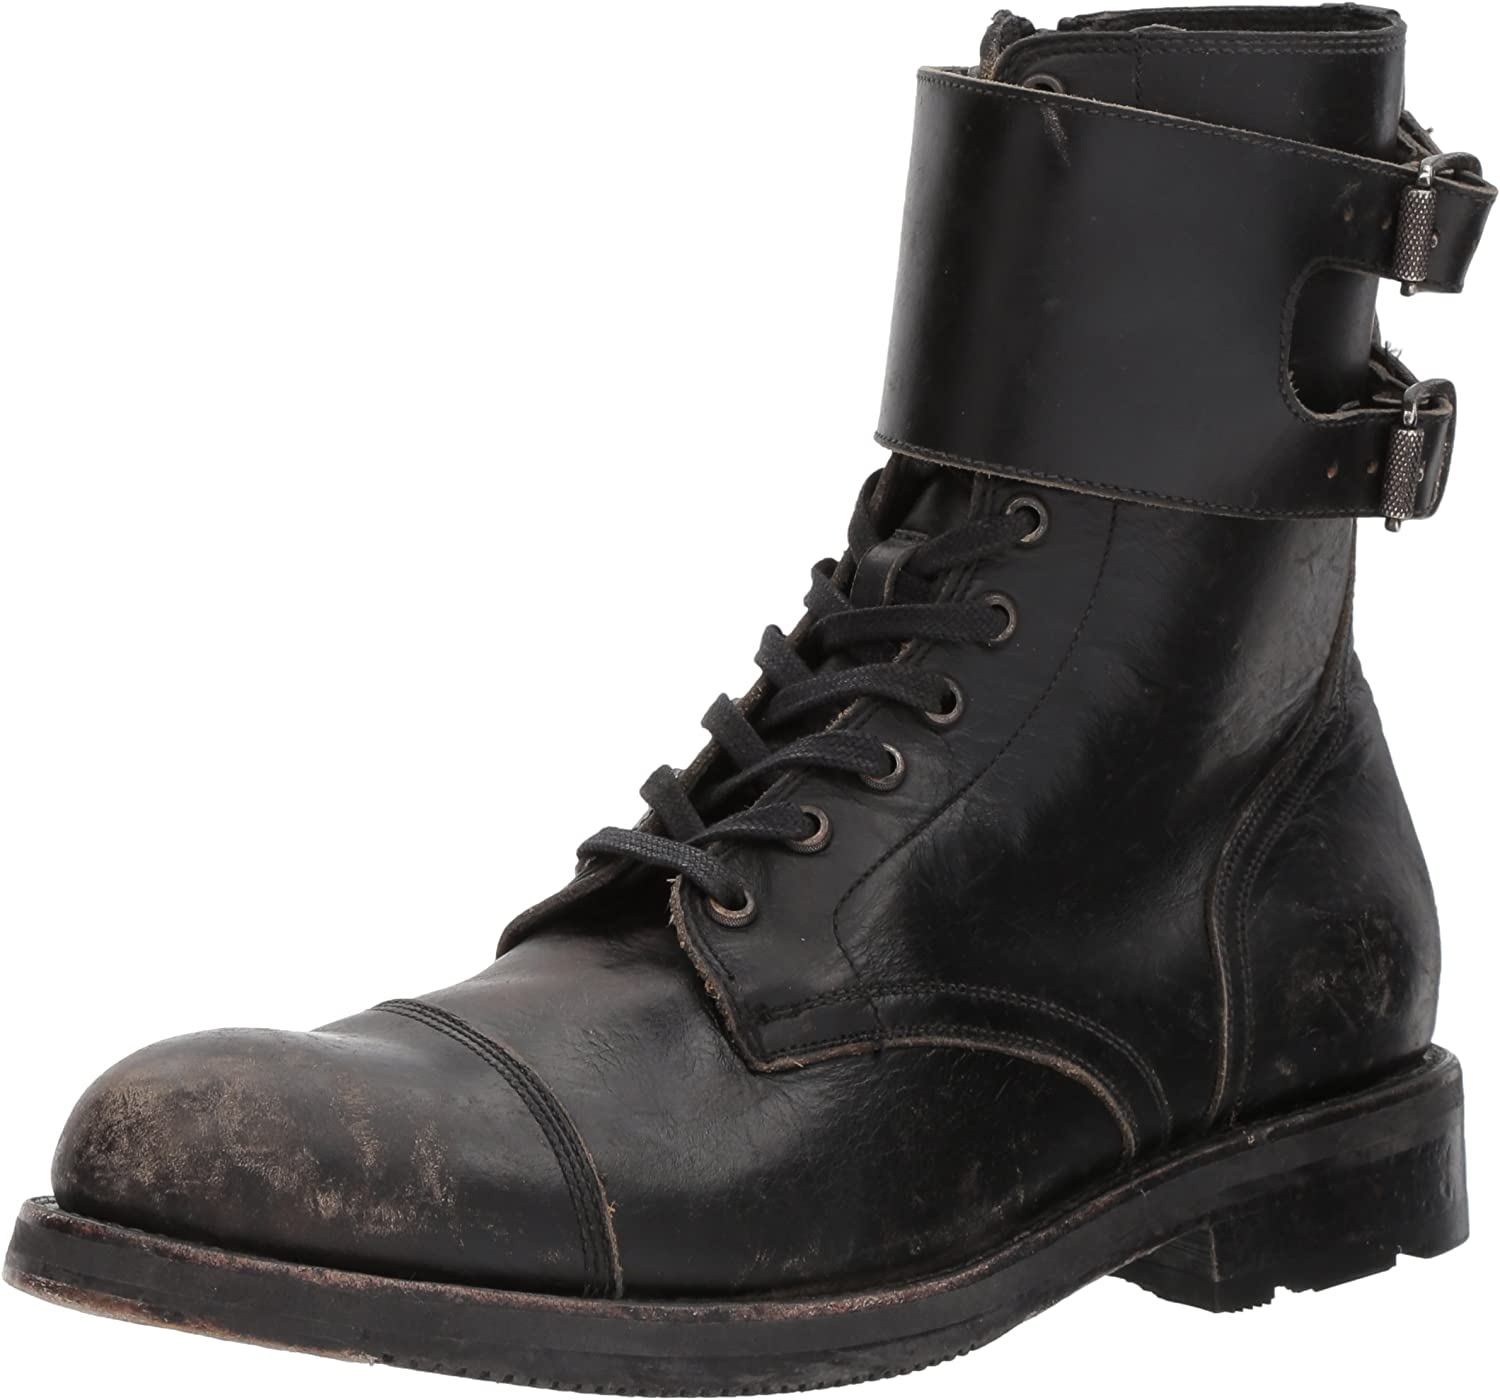 259333cd8e301 Men's Officer Cuff Combat FRYE Boot npxbvt6161-New Shoes - boxing ...